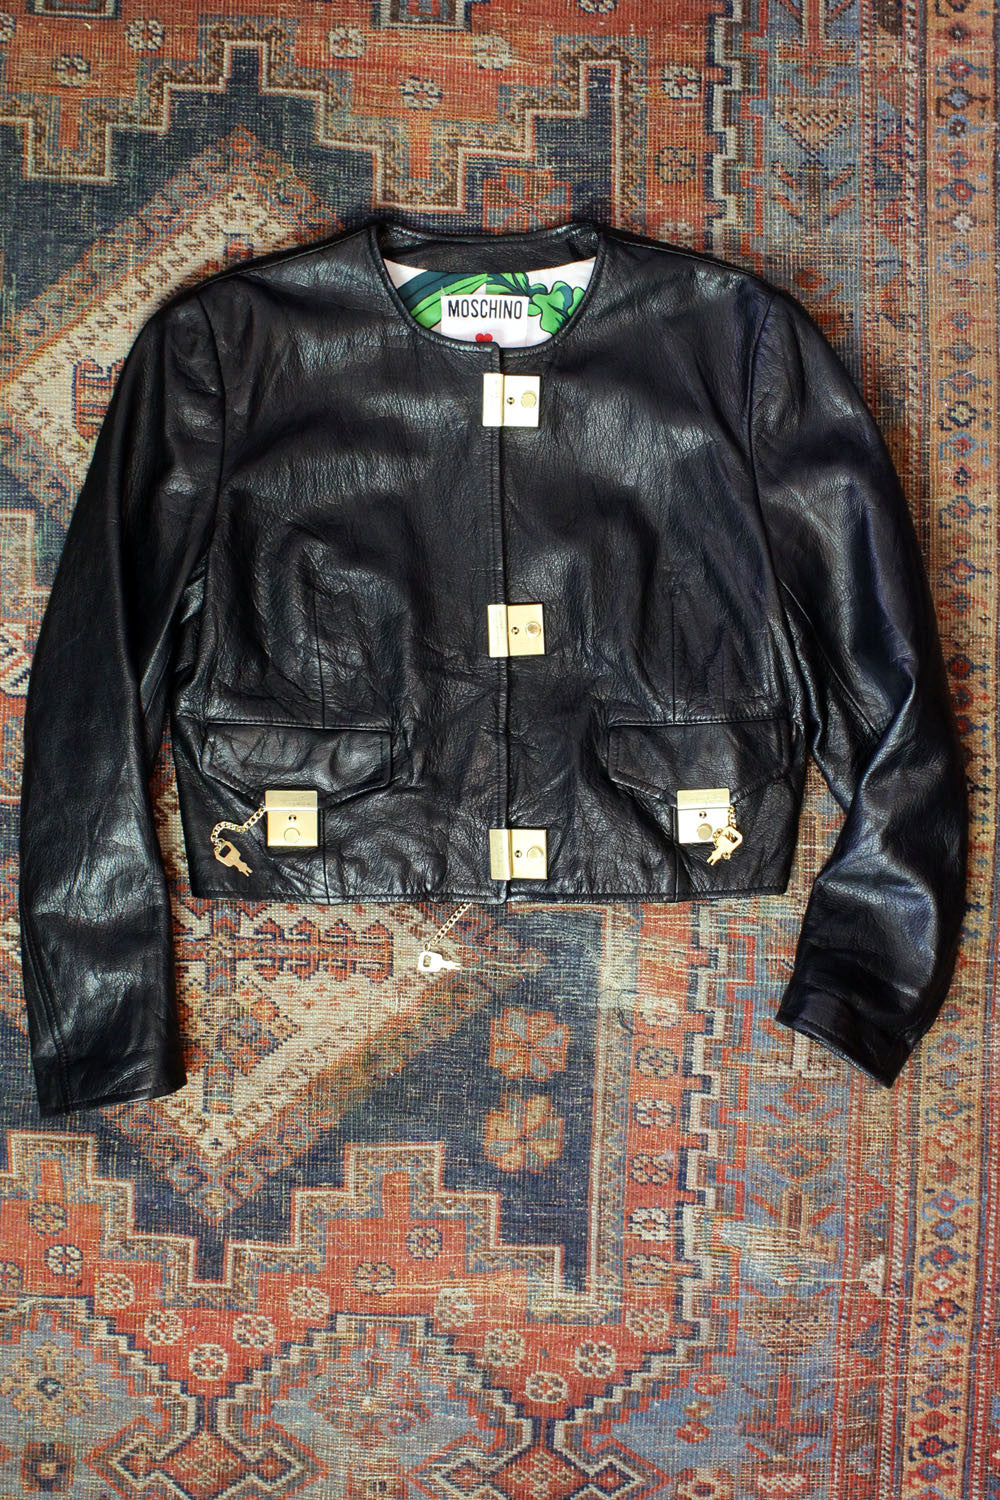 Moschino Cheap and Chic Black Leather Jacket w/ Locking Locks M